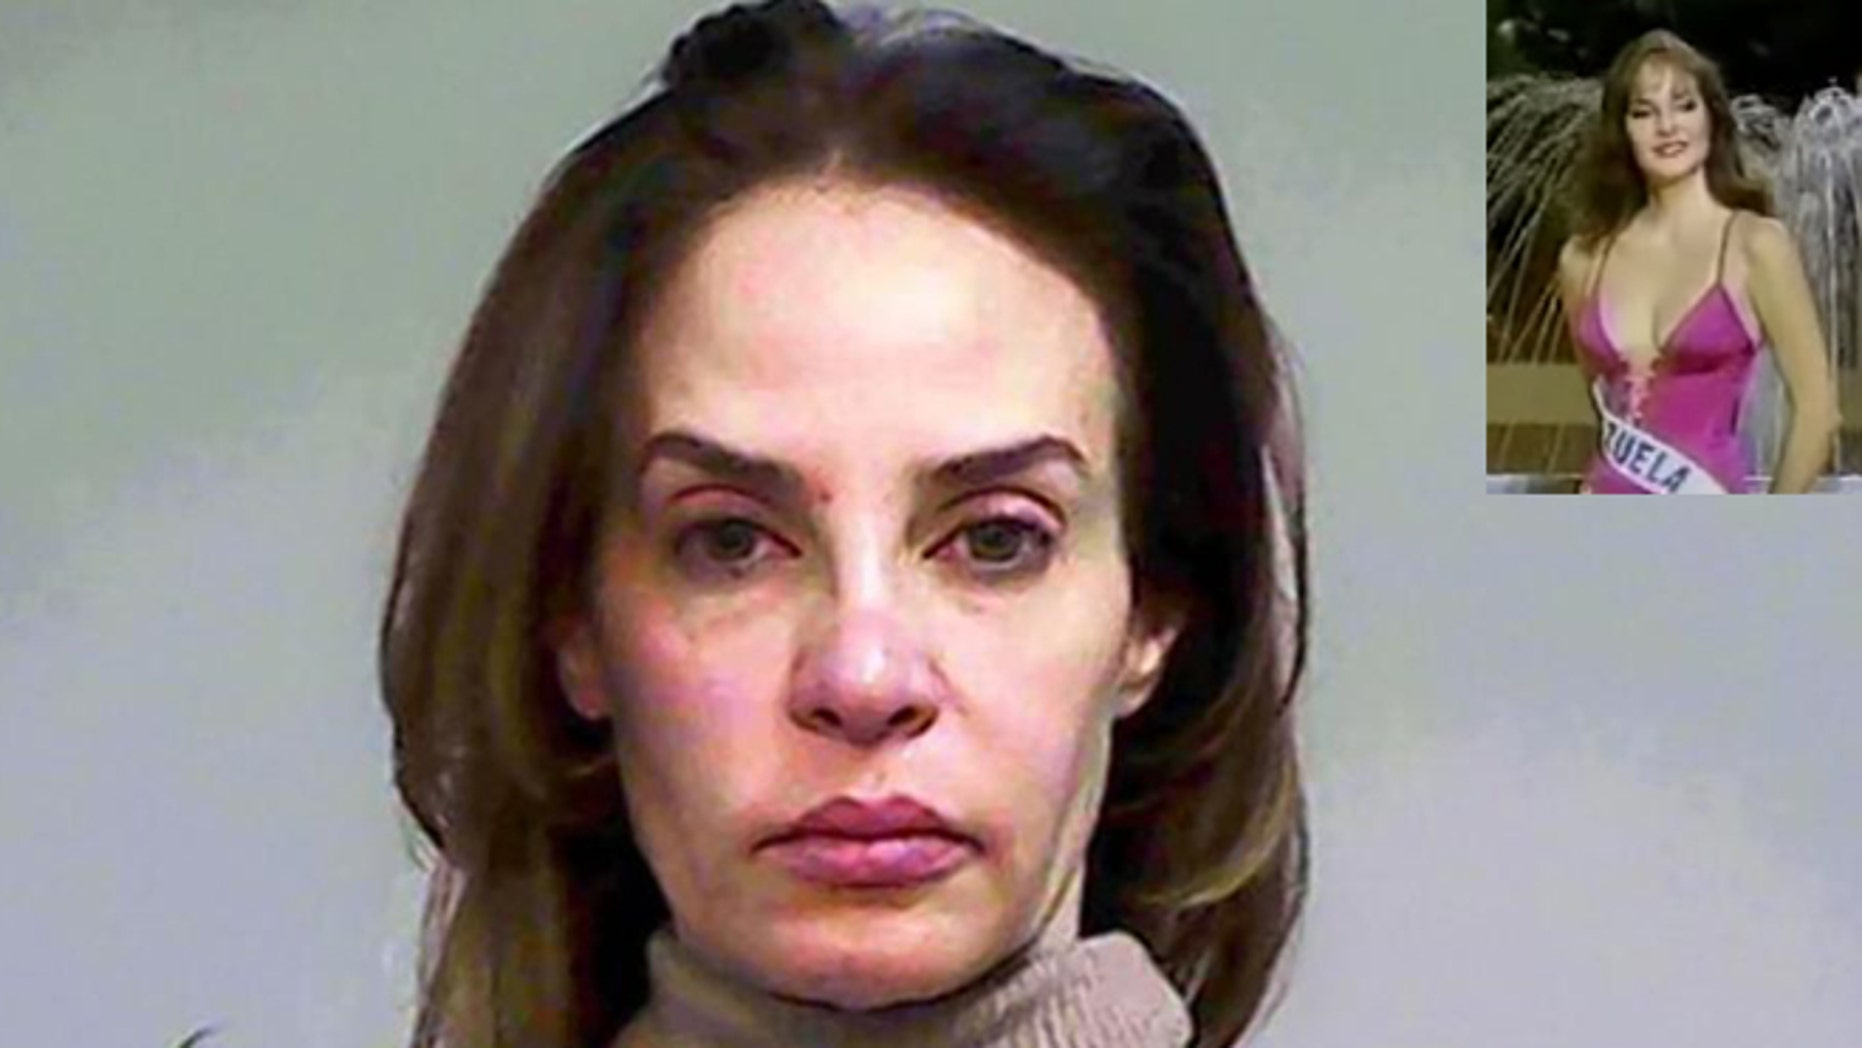 Carmen Lechin in a 2011 mug shot from a different incident. Inset: In happier times, Carmen Maria Montiel competing at the 1984 Miss Universe pageant in Miami.